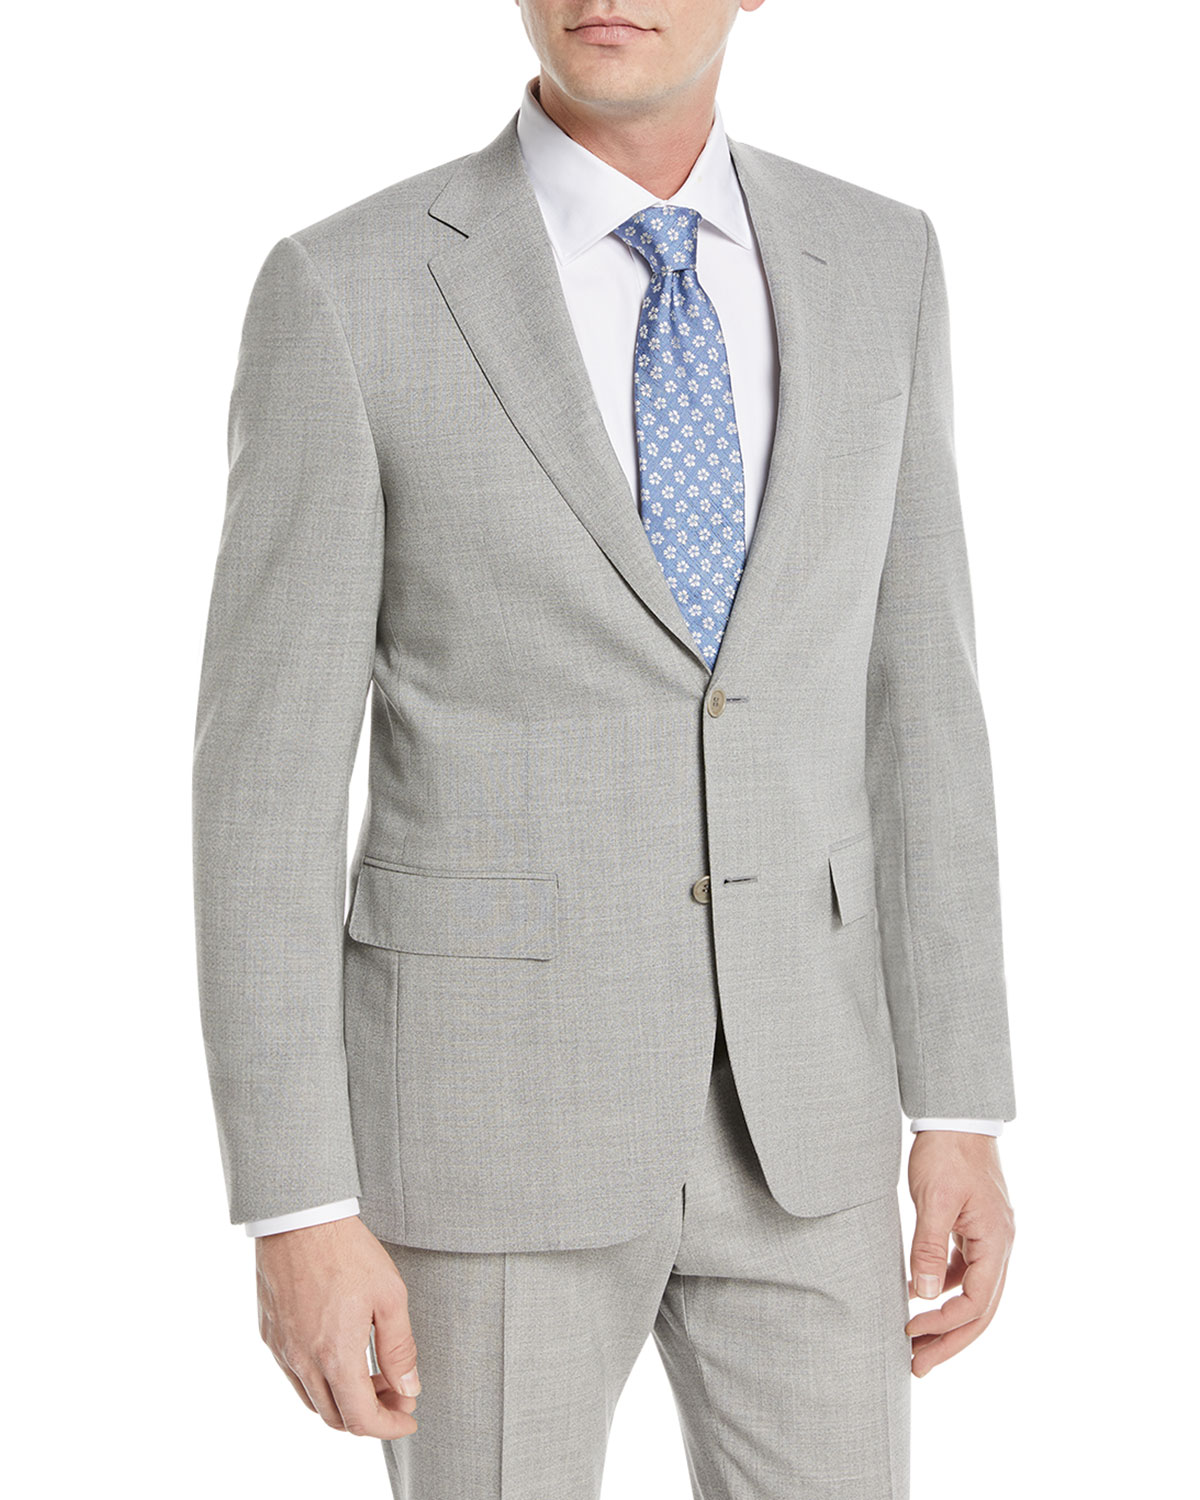 db4dddea56a CANALI HEATHERED SOLID WOOL TWO-PIECE SUIT, GRAY | ModeSens